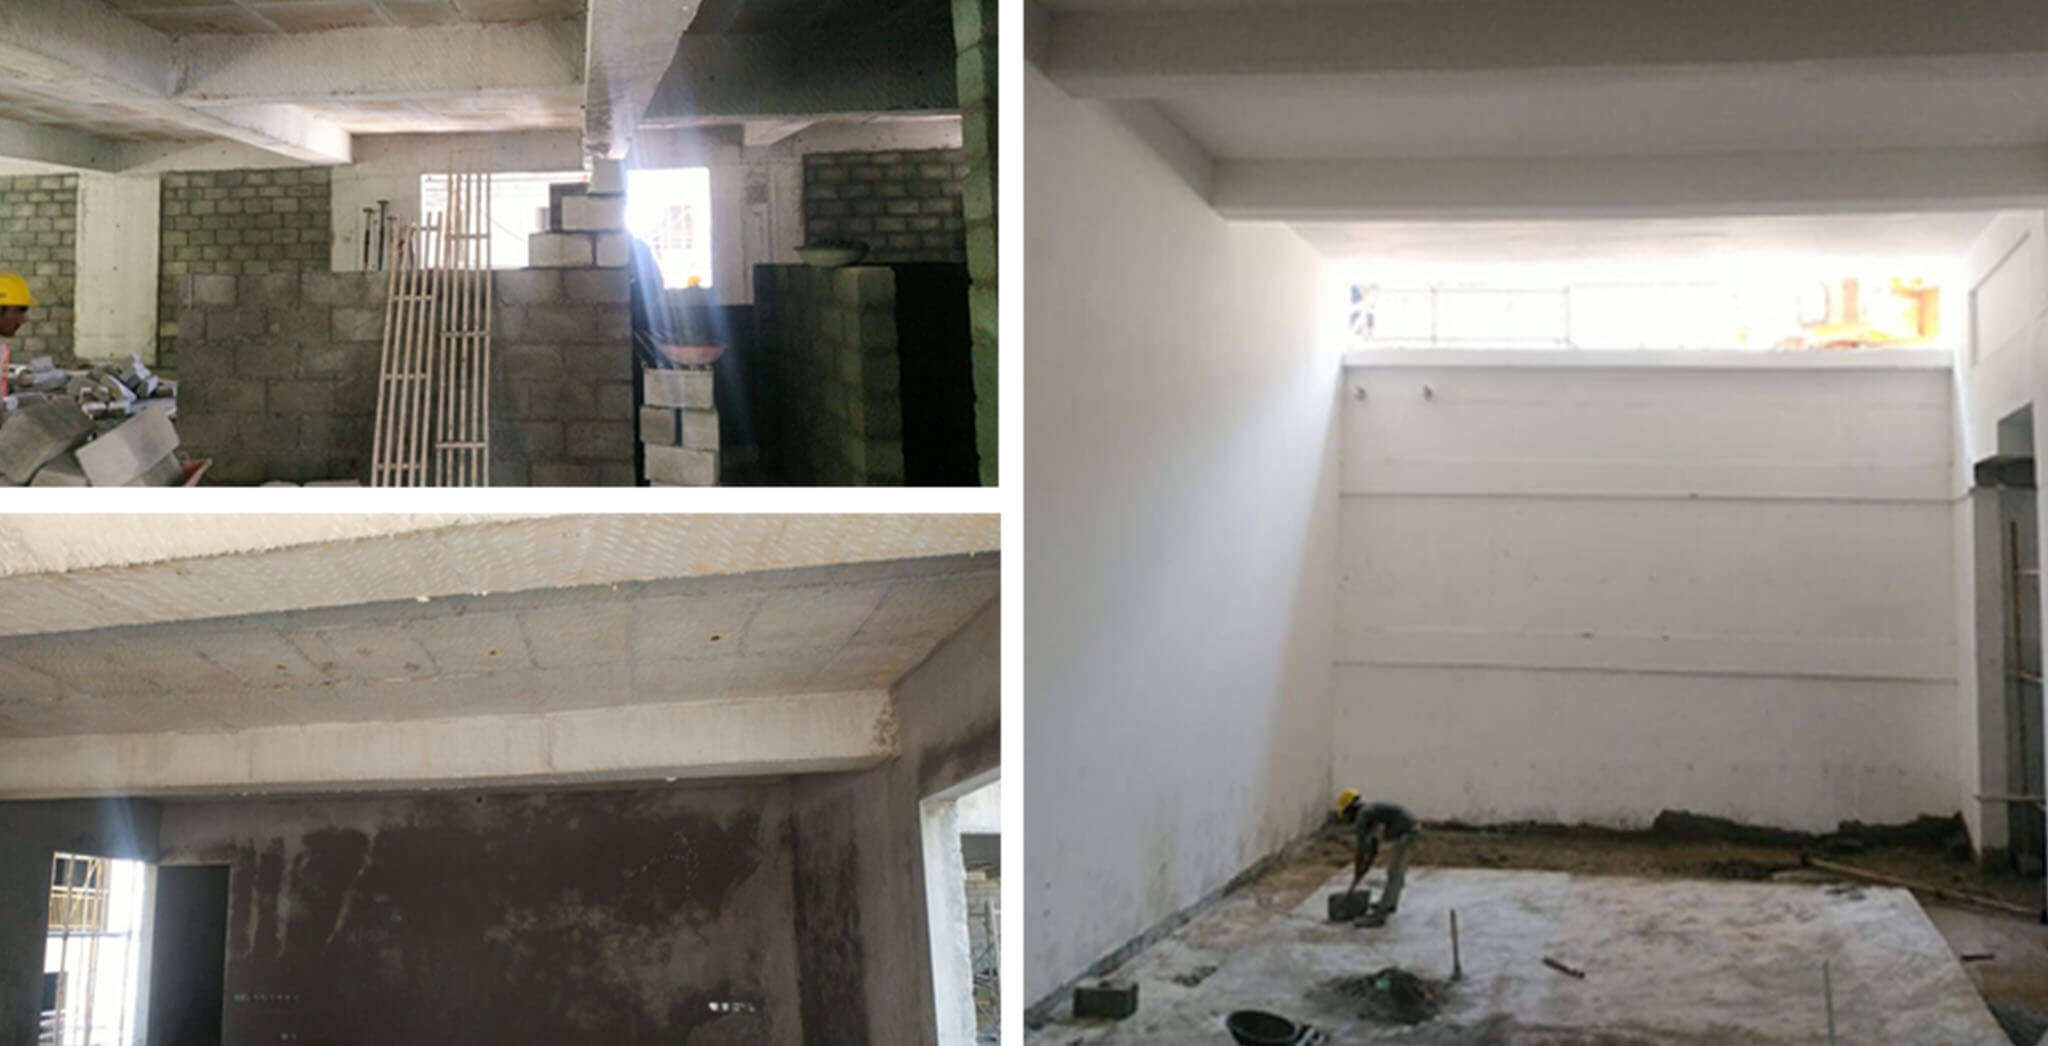 May 2021 - Clubhouse: Reinforcement work-in-progress for connecting slab between club and H block; 2nd floor block work, and Ground floor internal plastering work-in-progress; DG yard painting works, and North elevation external plastering work commenced.